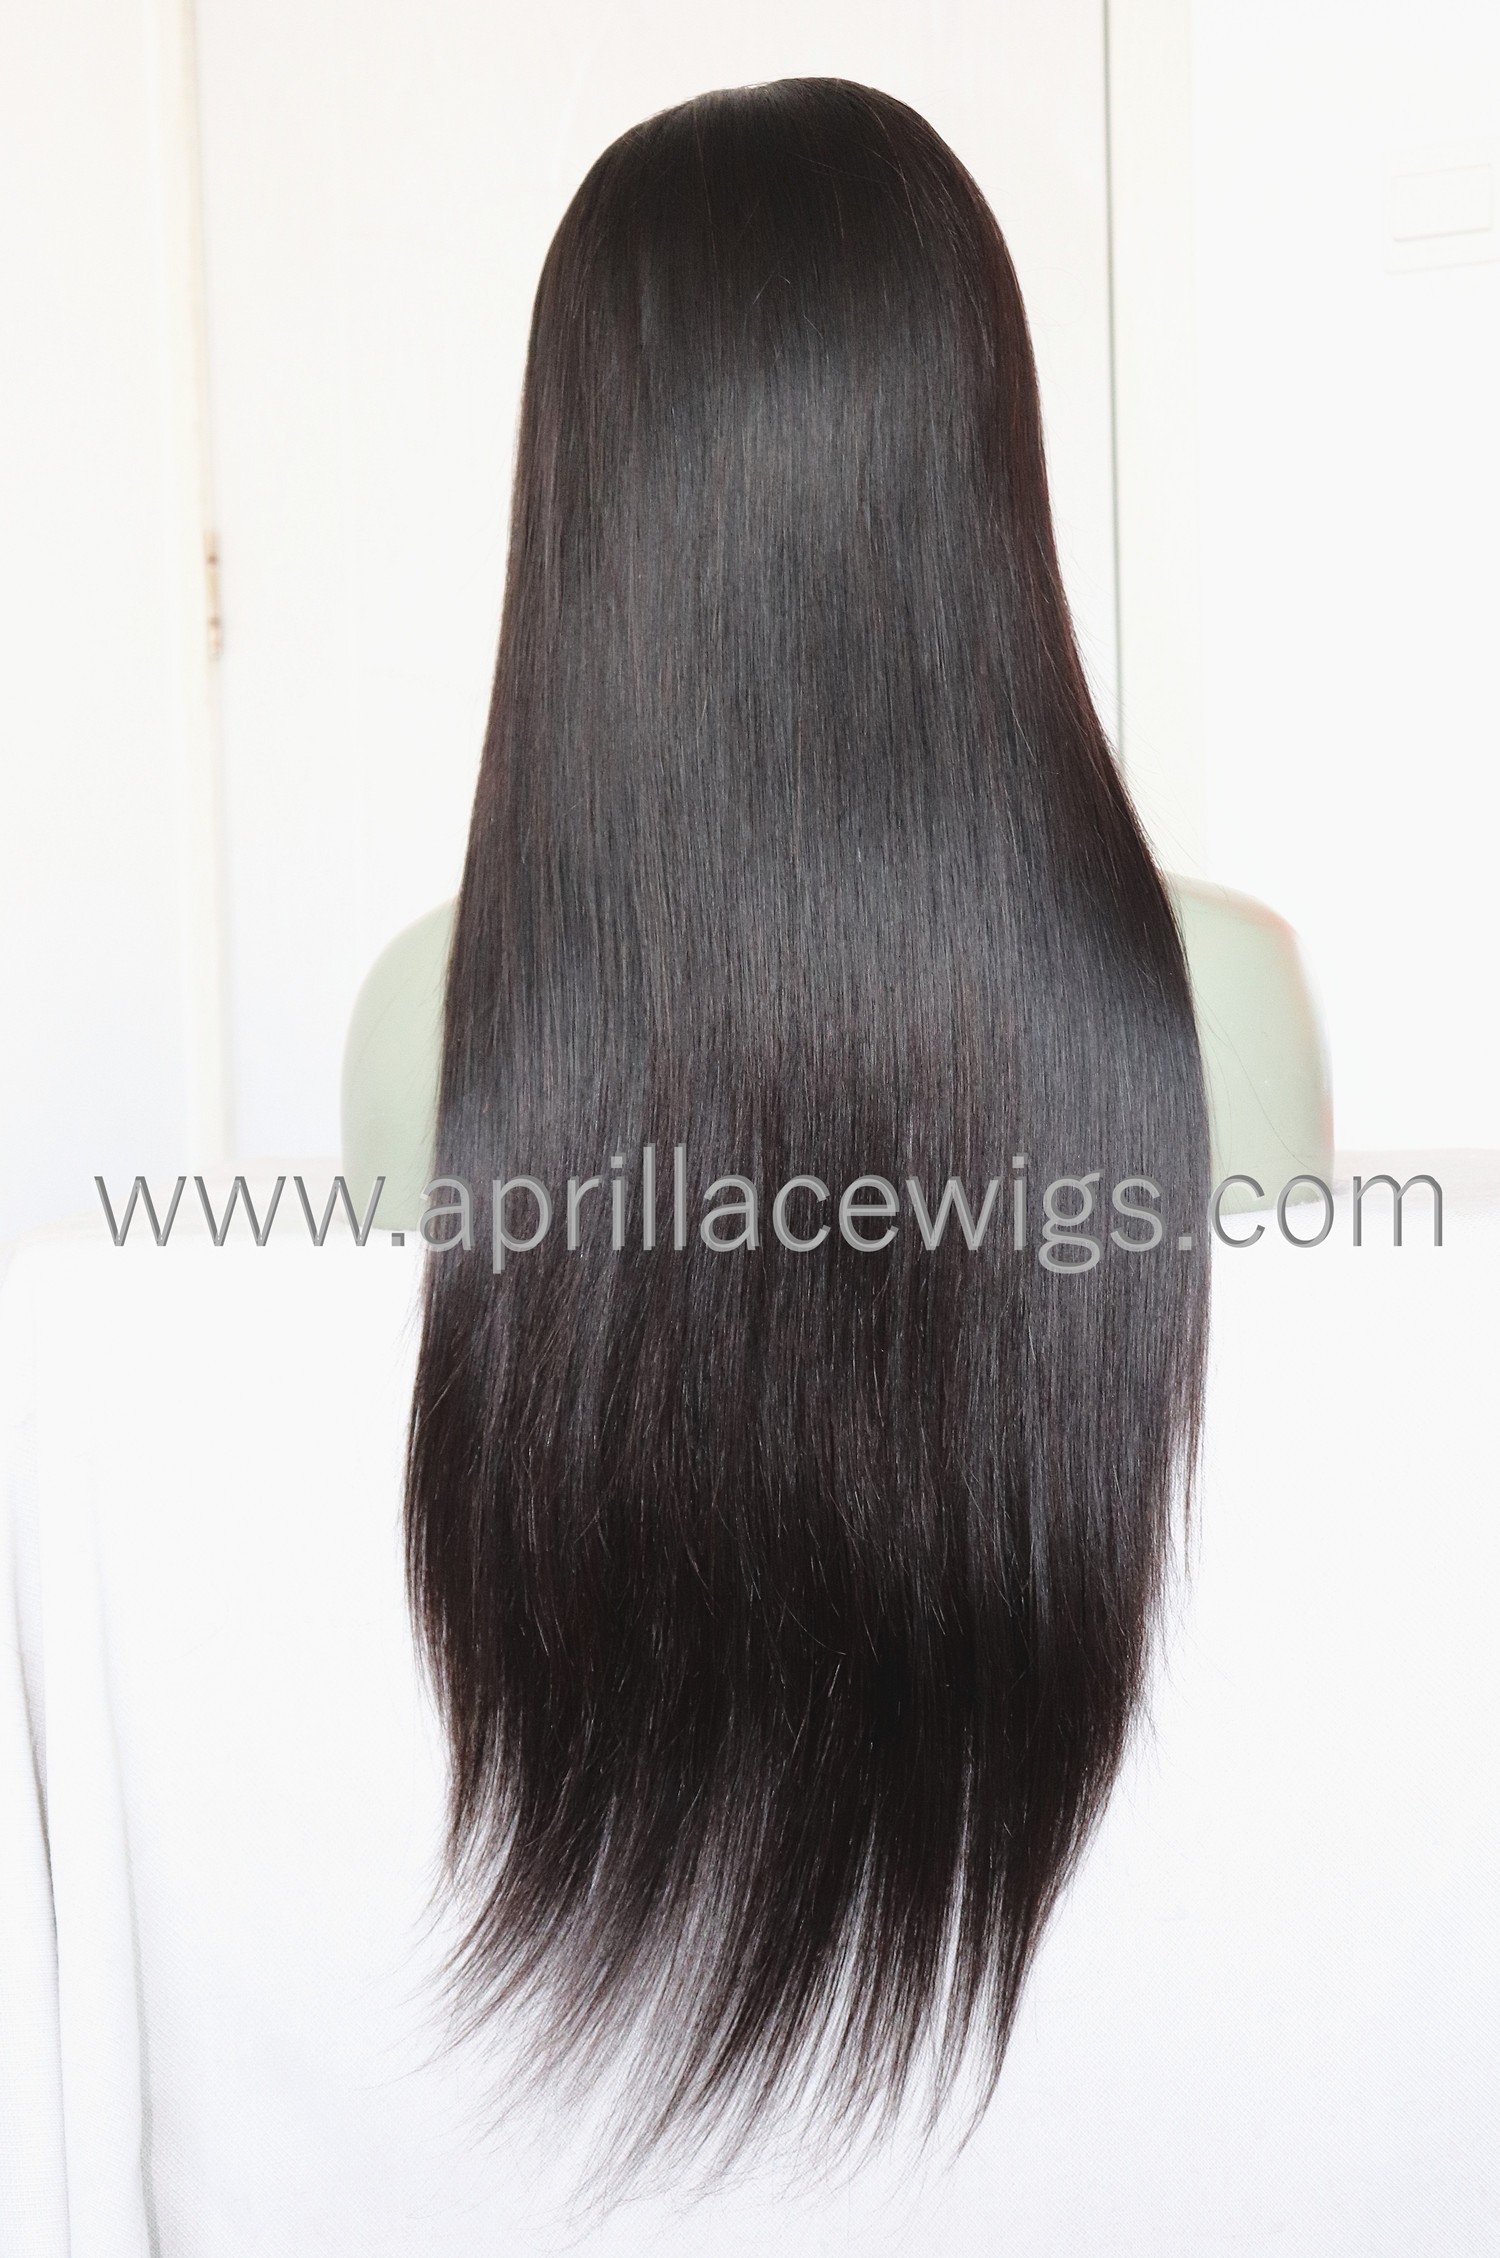 HD thin full lace wig virgin human hair preplucked hairline with straps